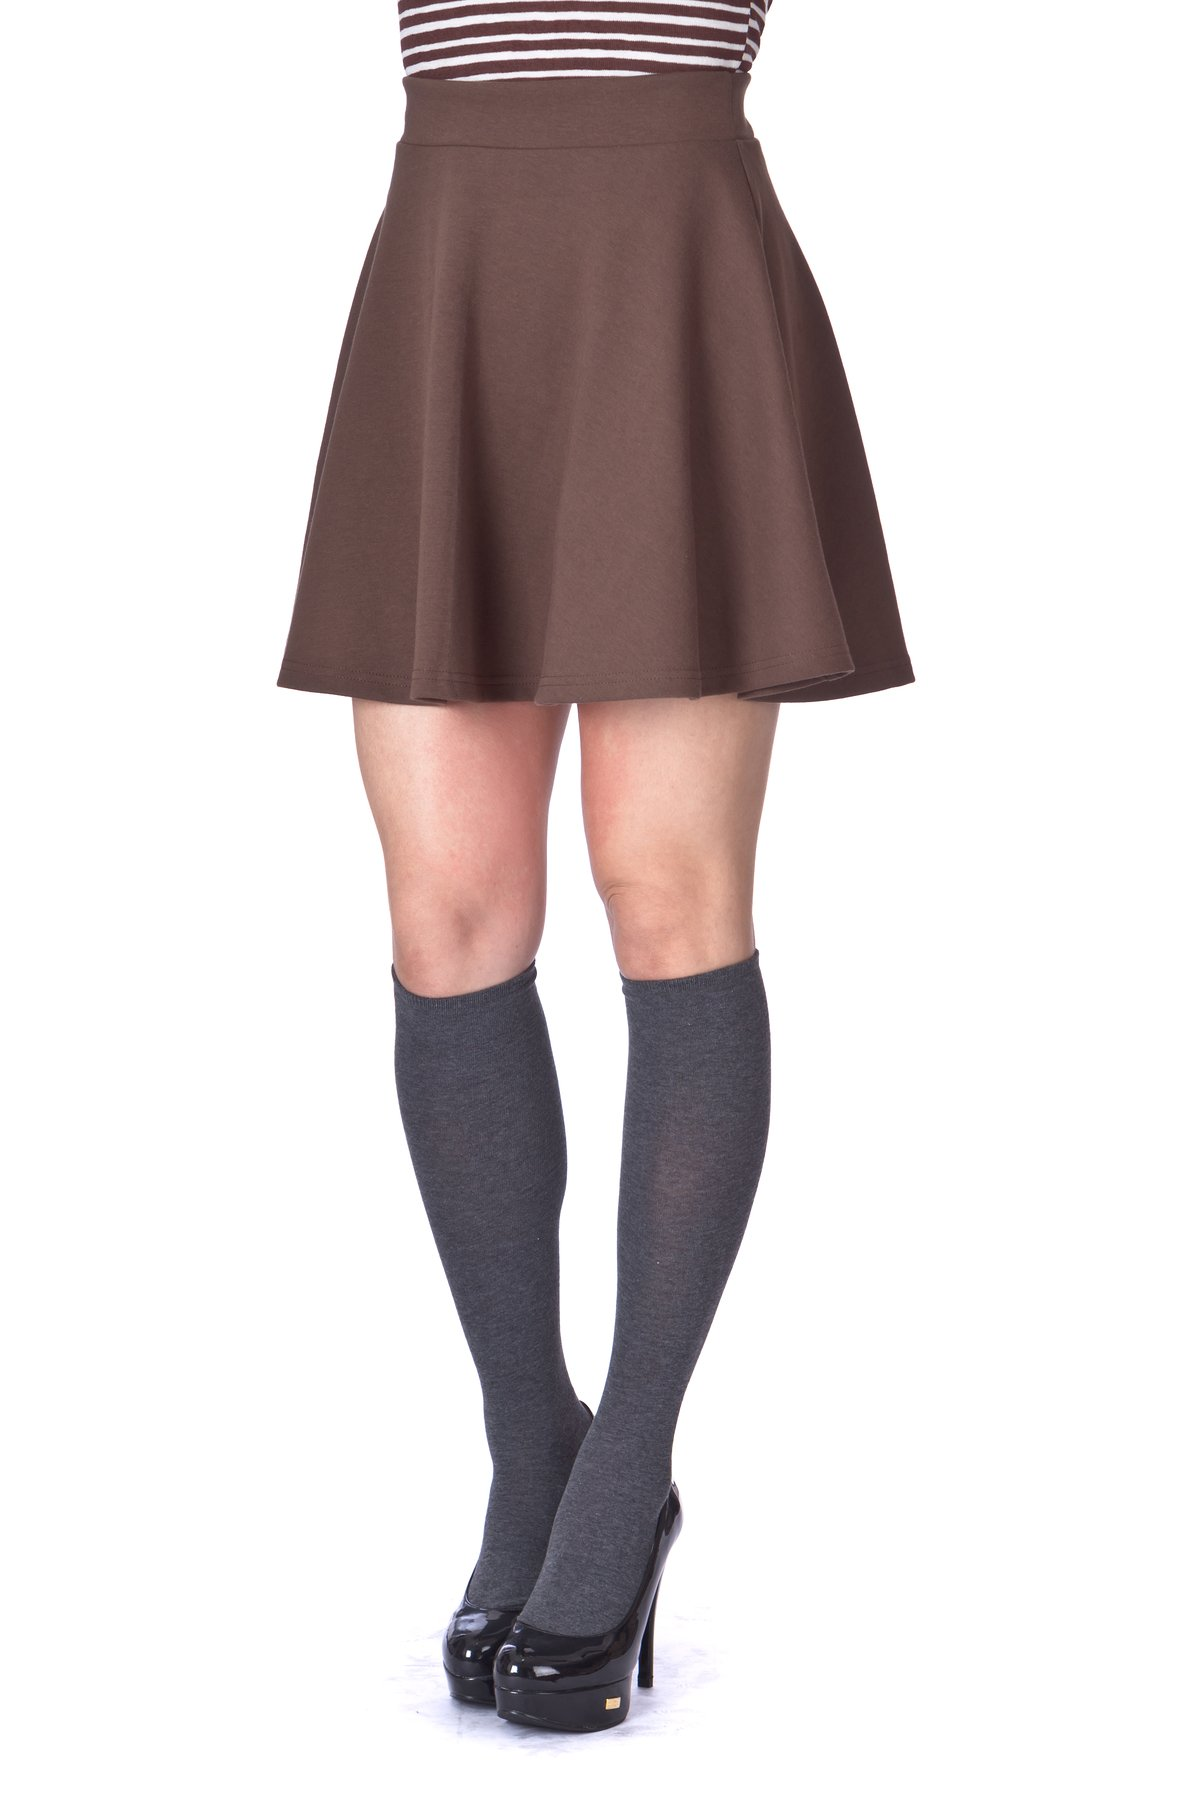 Basic Solid Stretchy Cotton High Waist A line Flared Skater Mini Skirt Brown 6 1